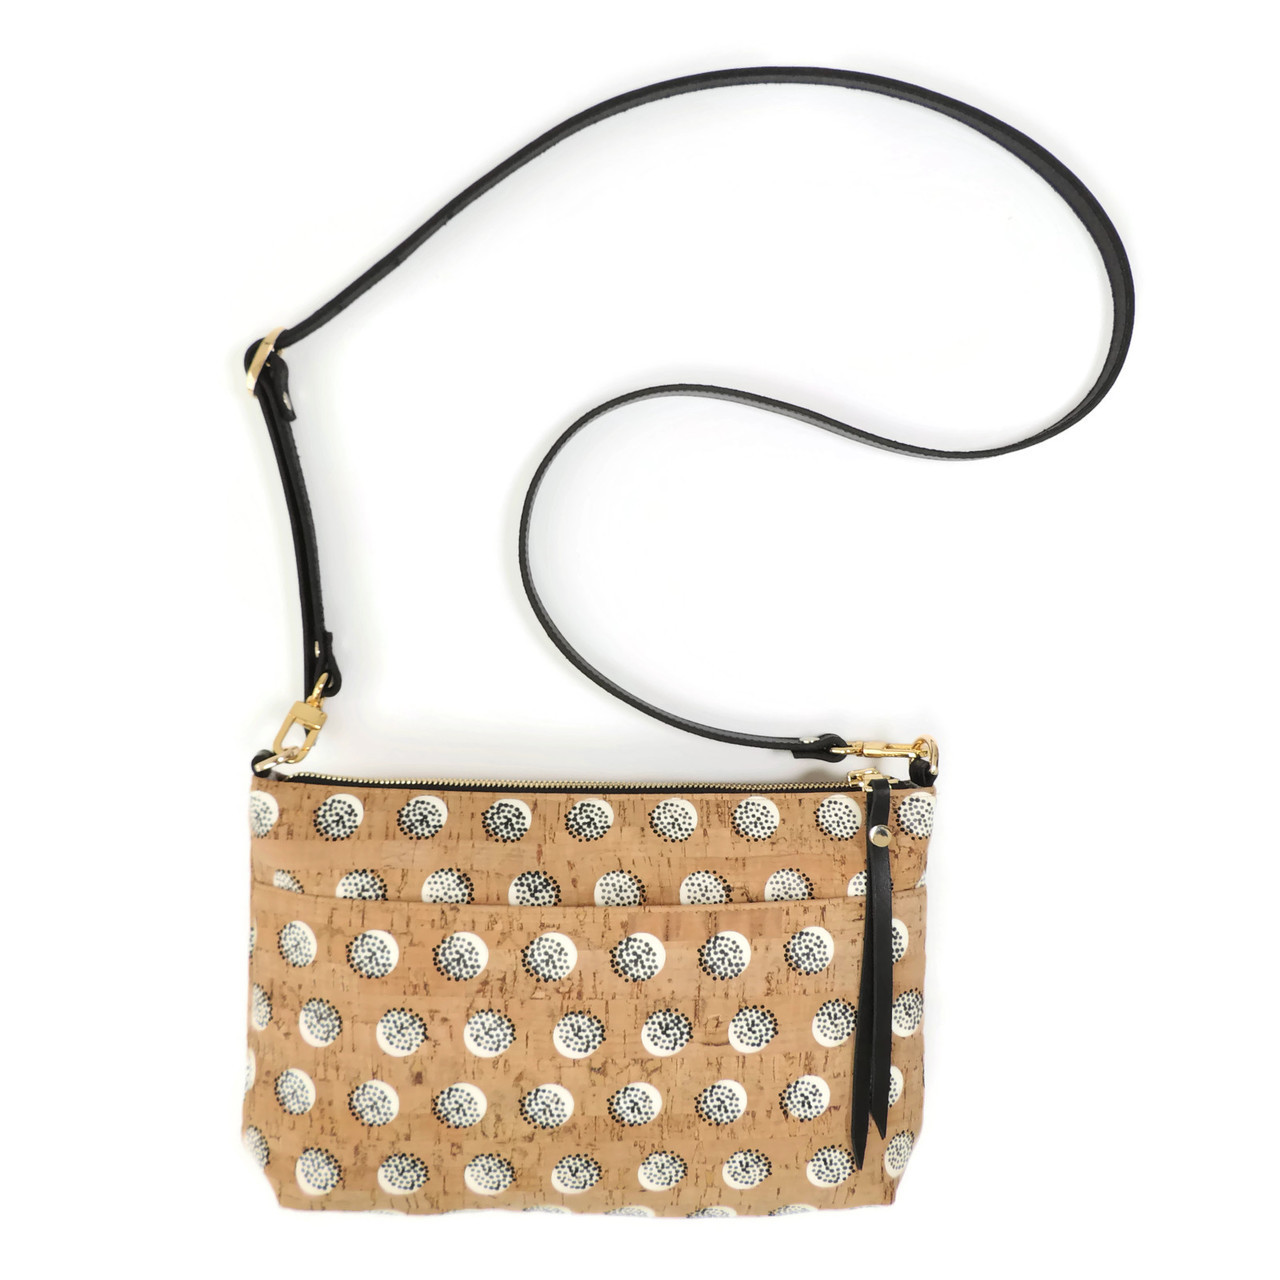 Crossbody Purse in Black Dandelion Cork